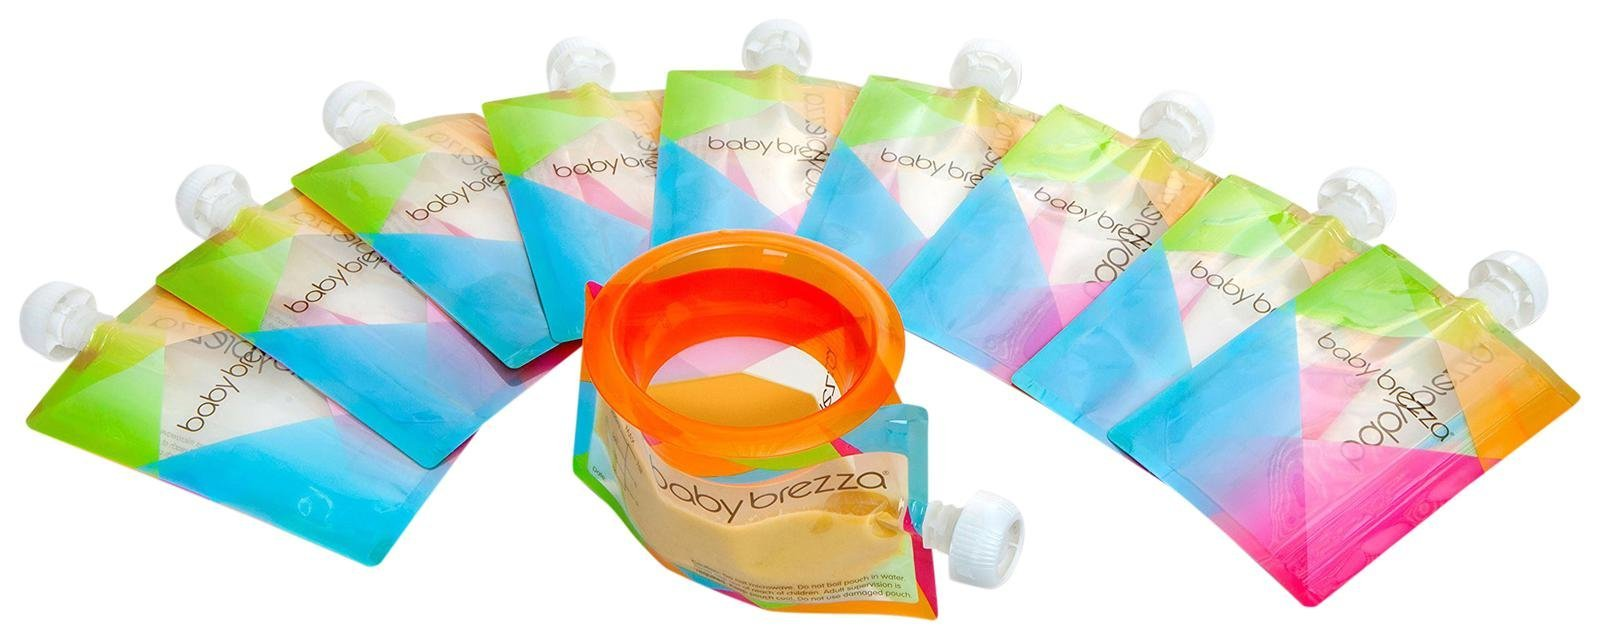 Baby Brezza Reusable Baby Food Storage Pouches, 10 Pack 7oz - Make Organic Food Puree for Kids or Toddlers and Store in Refillable Squeeze Pouches, Bulk Set is Freezer Safe & Washable